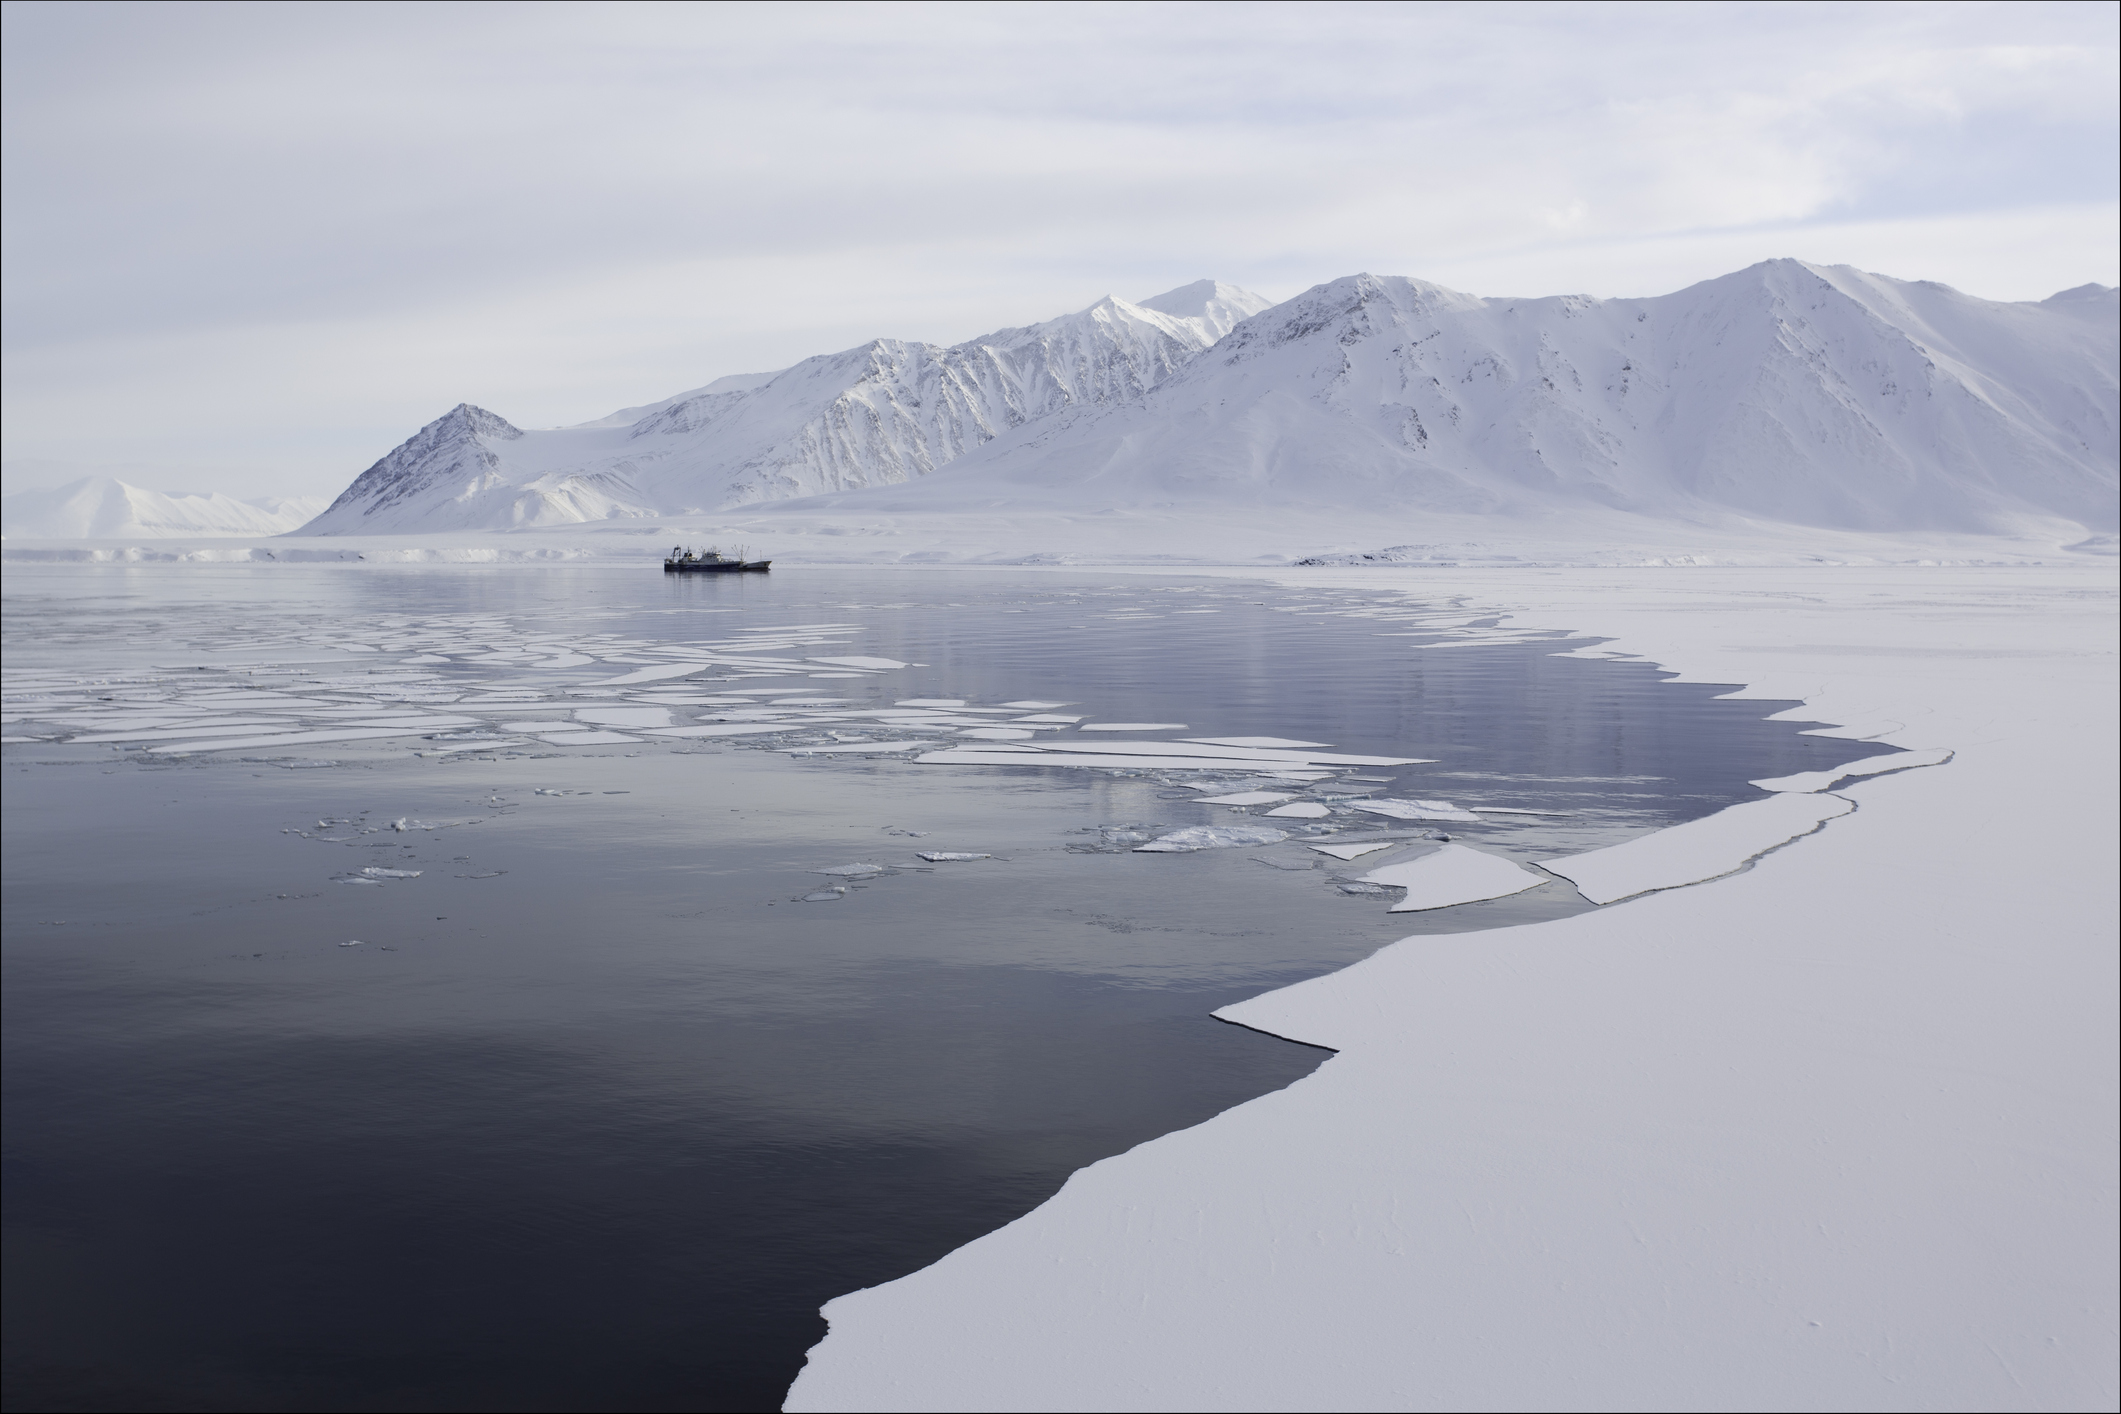 Territorial disputes in the Arctic make for an uncertain future as countries lay claim to vast swaths of offshore territory—vying for exclusive rights to drilling, fishing, and other economic activities. Photograph by H?kon Kj'llmoen Photography/Getty Images